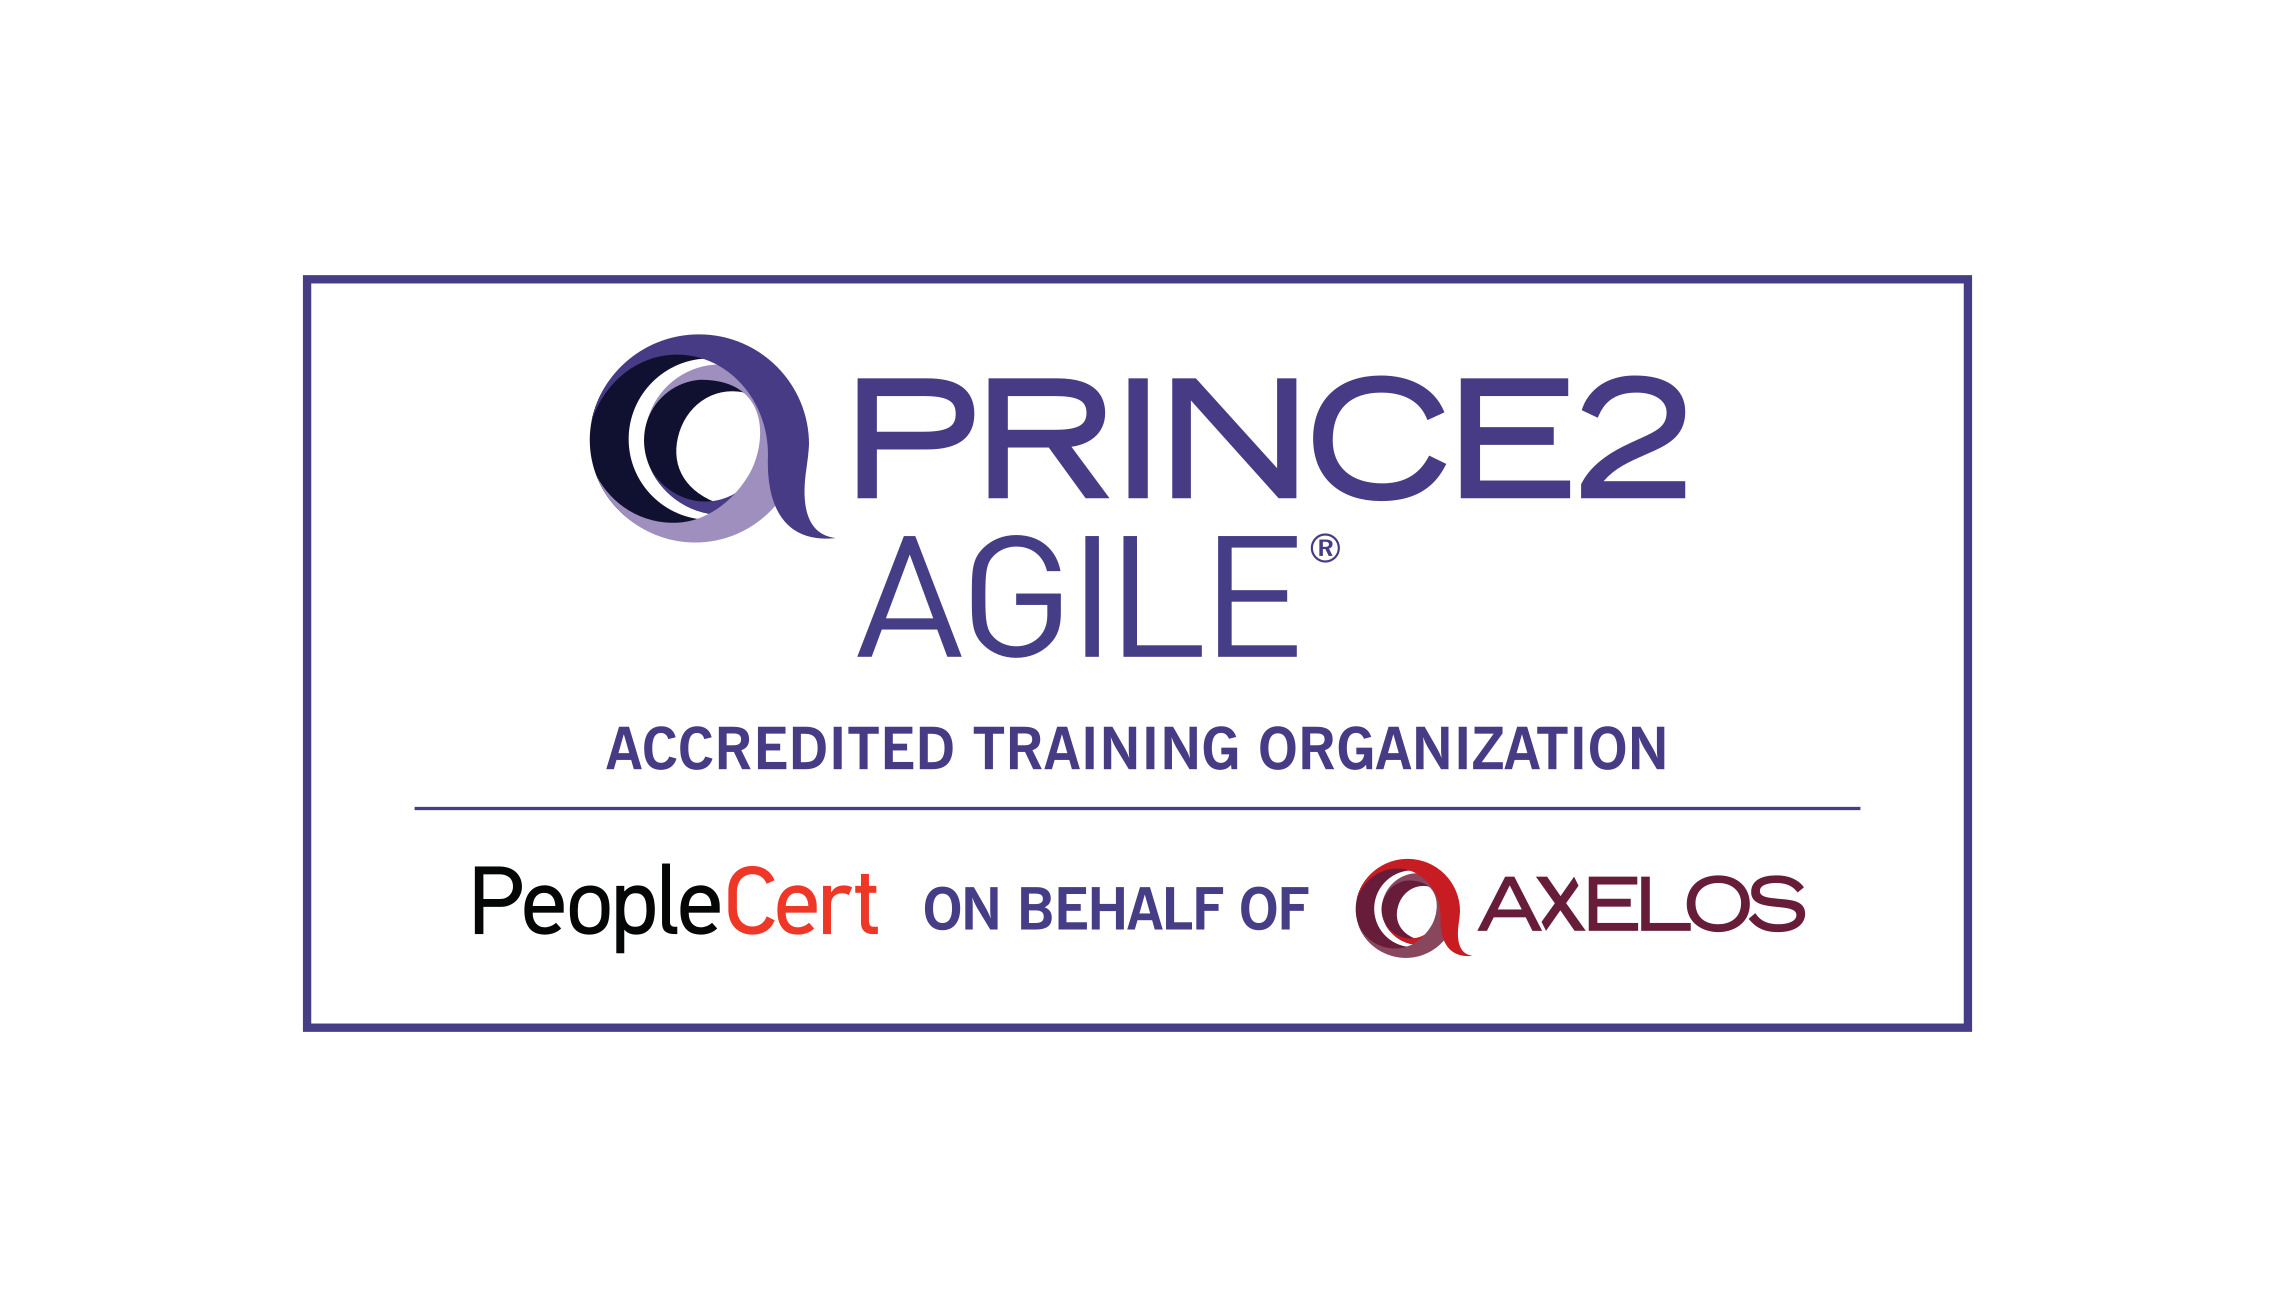 PRINCE2® - Certification Training & IT Courses with Guaranteed ResultsVendor Logo